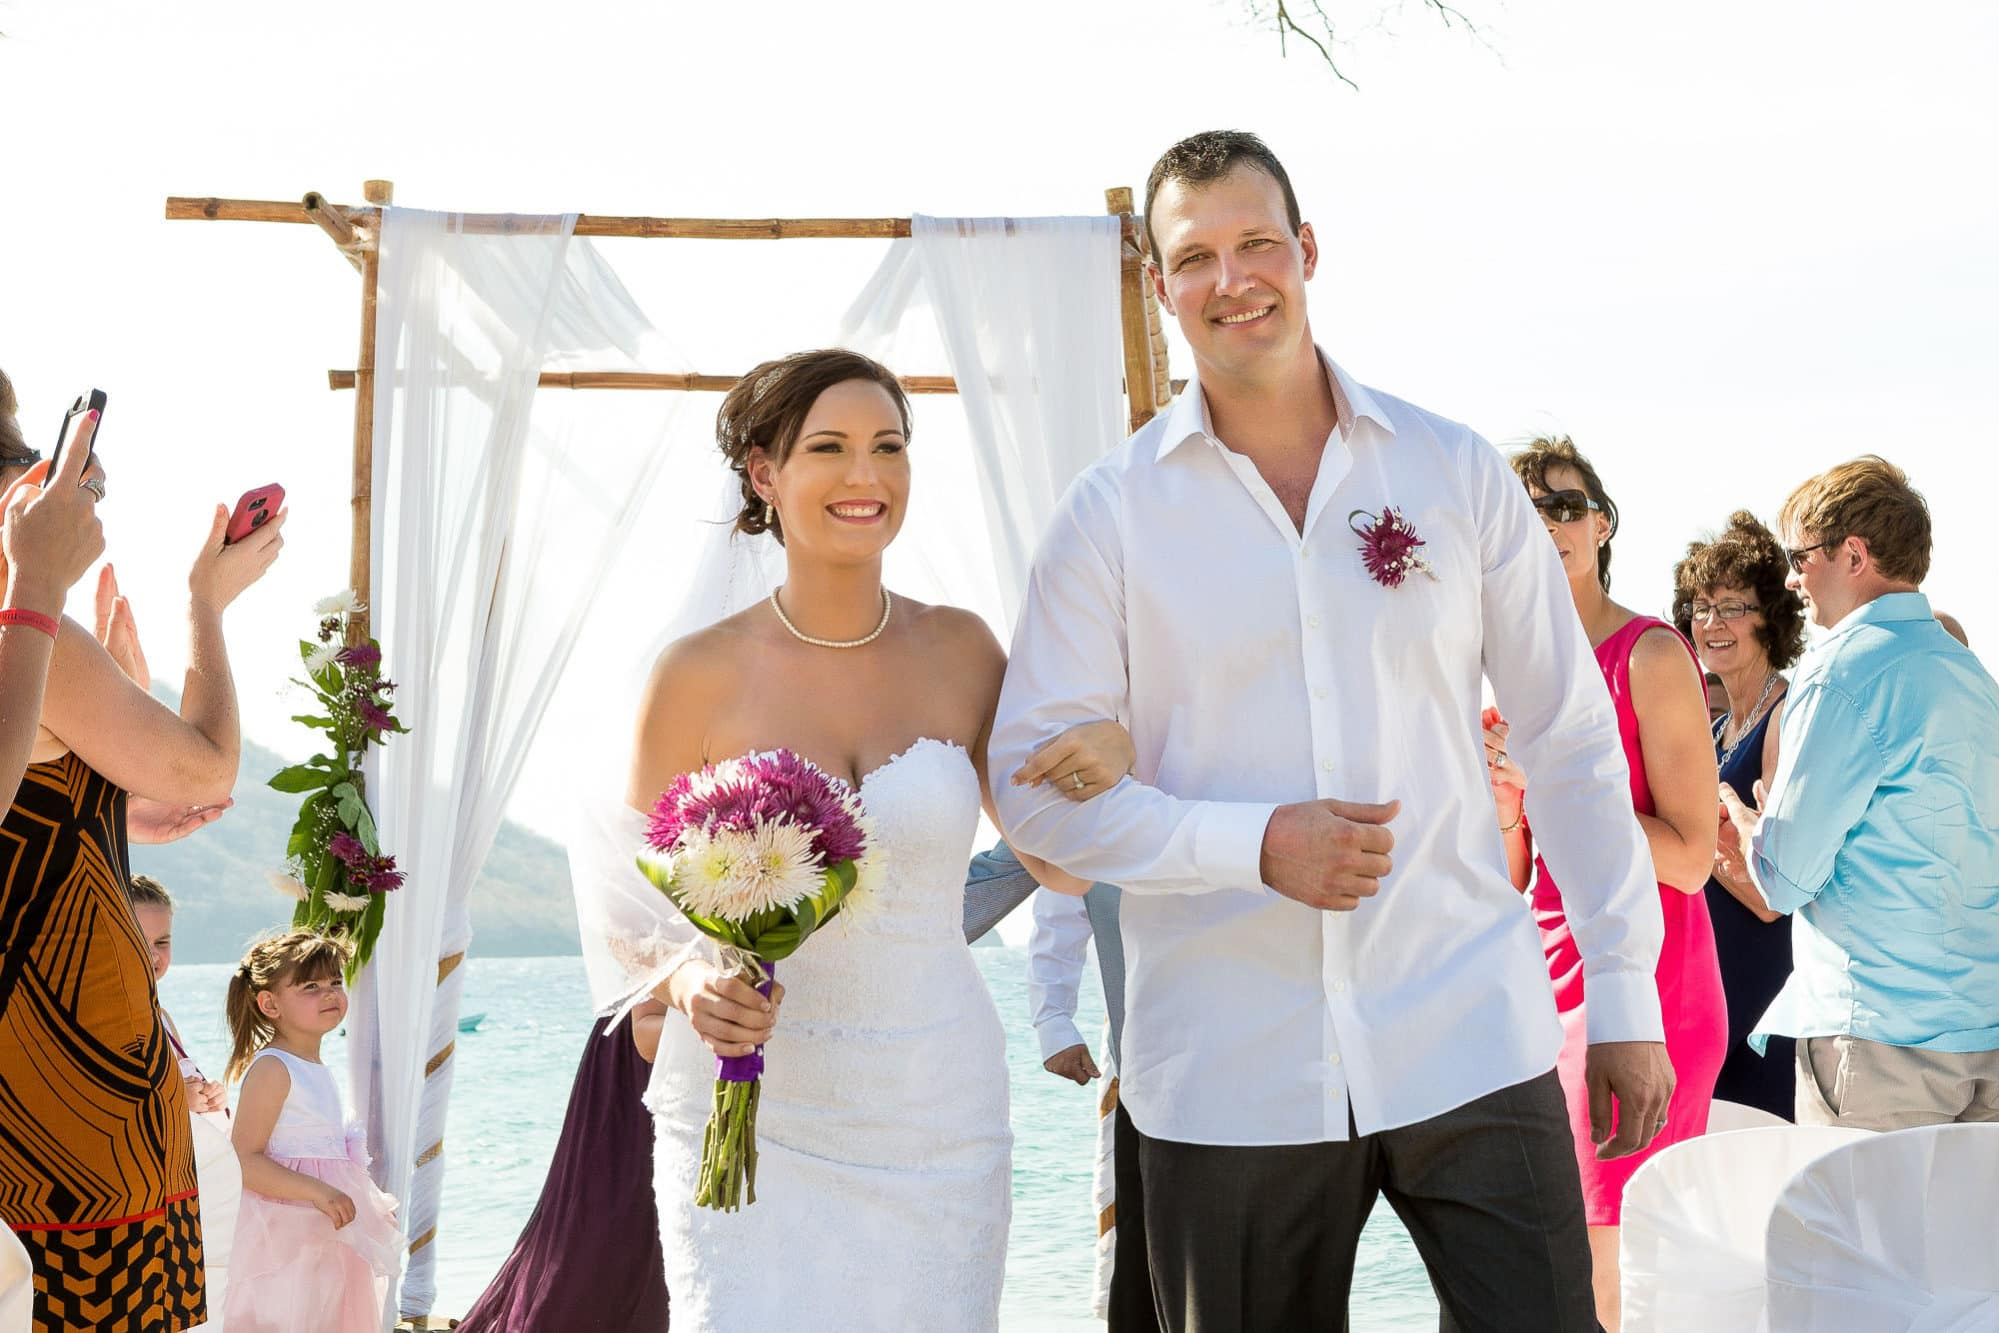 riu wedding in costa rica